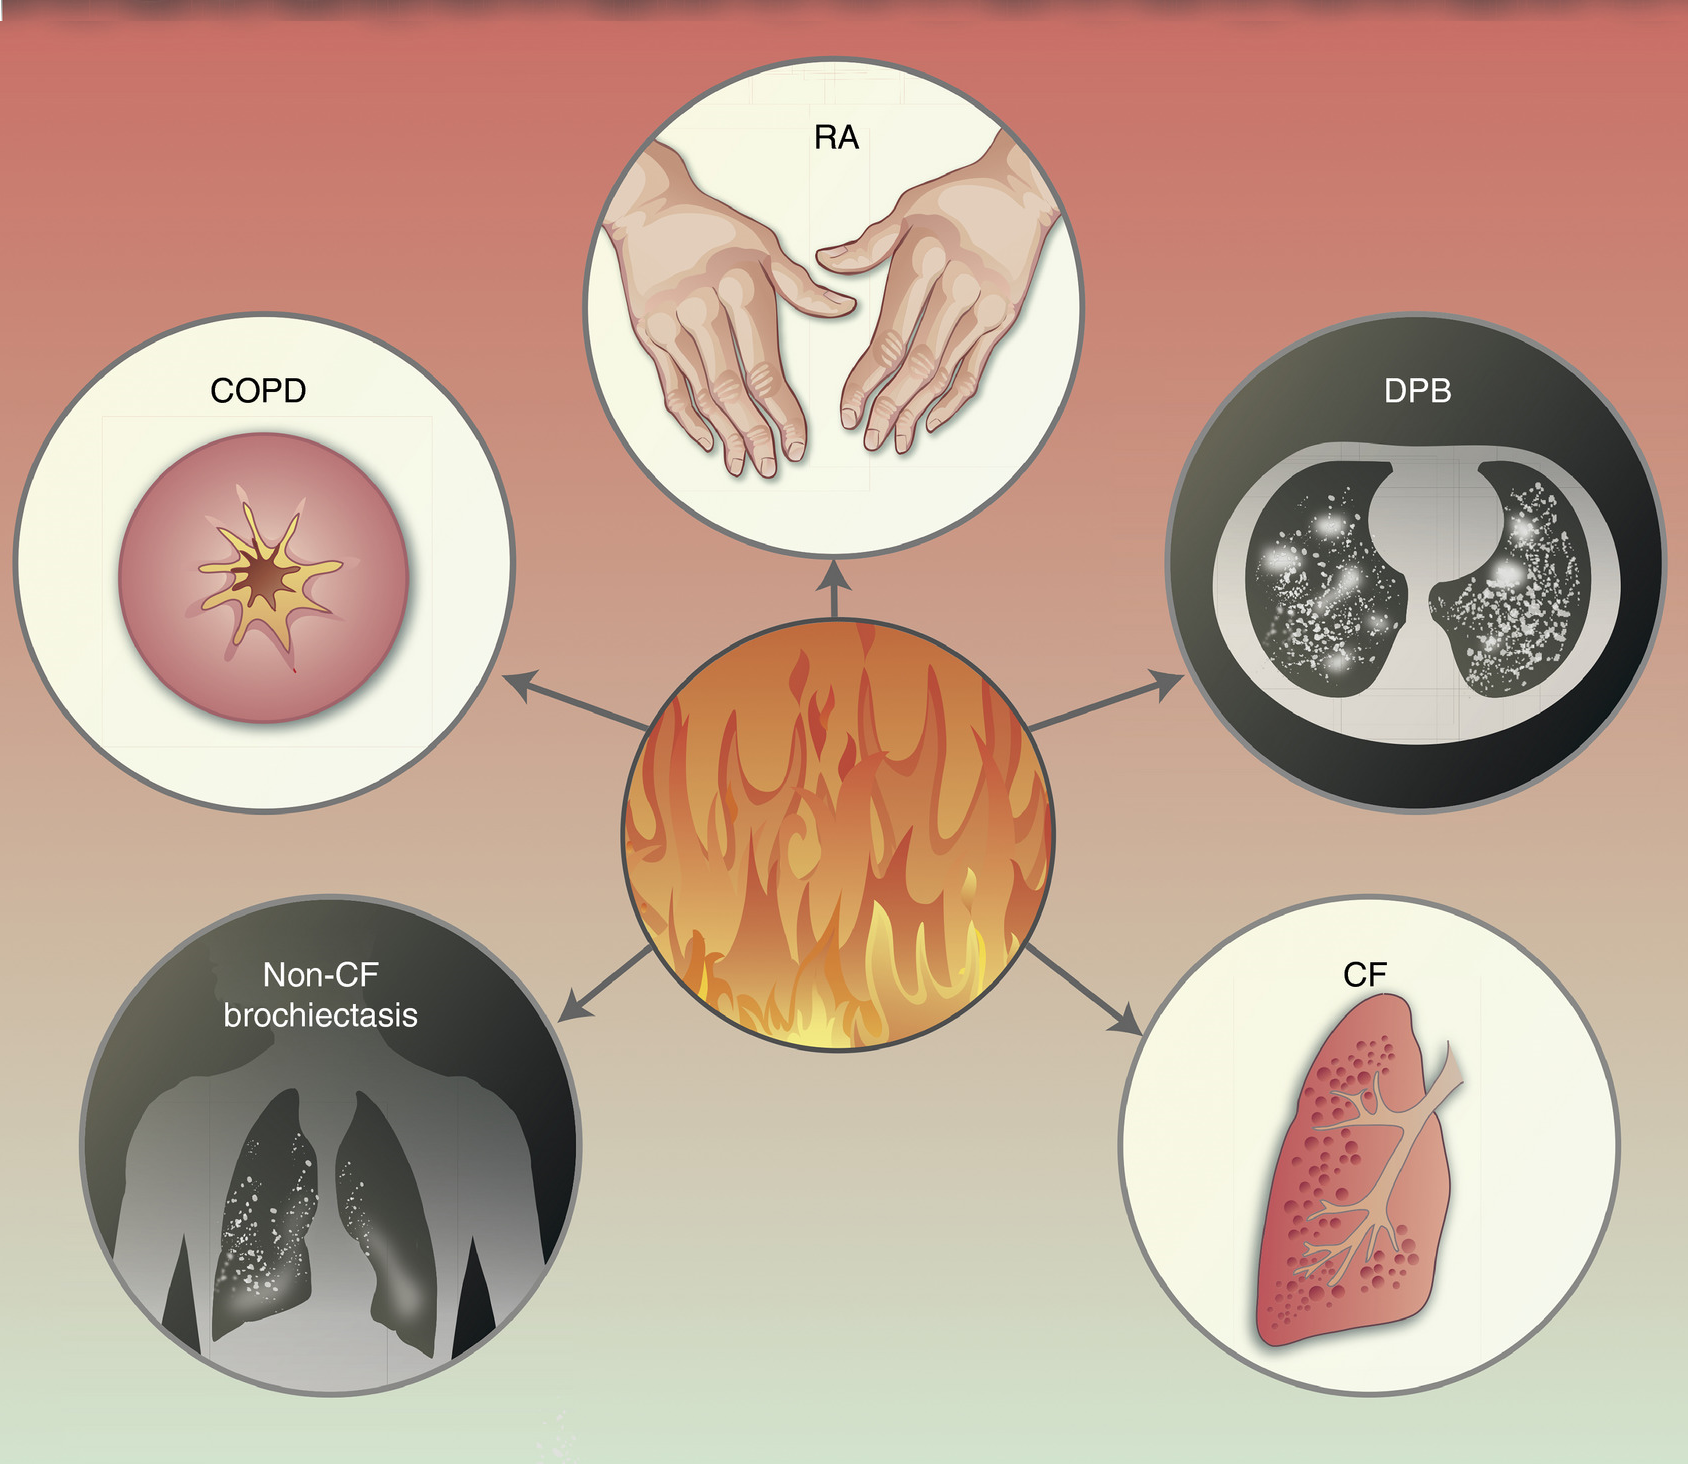 Figure from Autoinflammatory disease in the lung